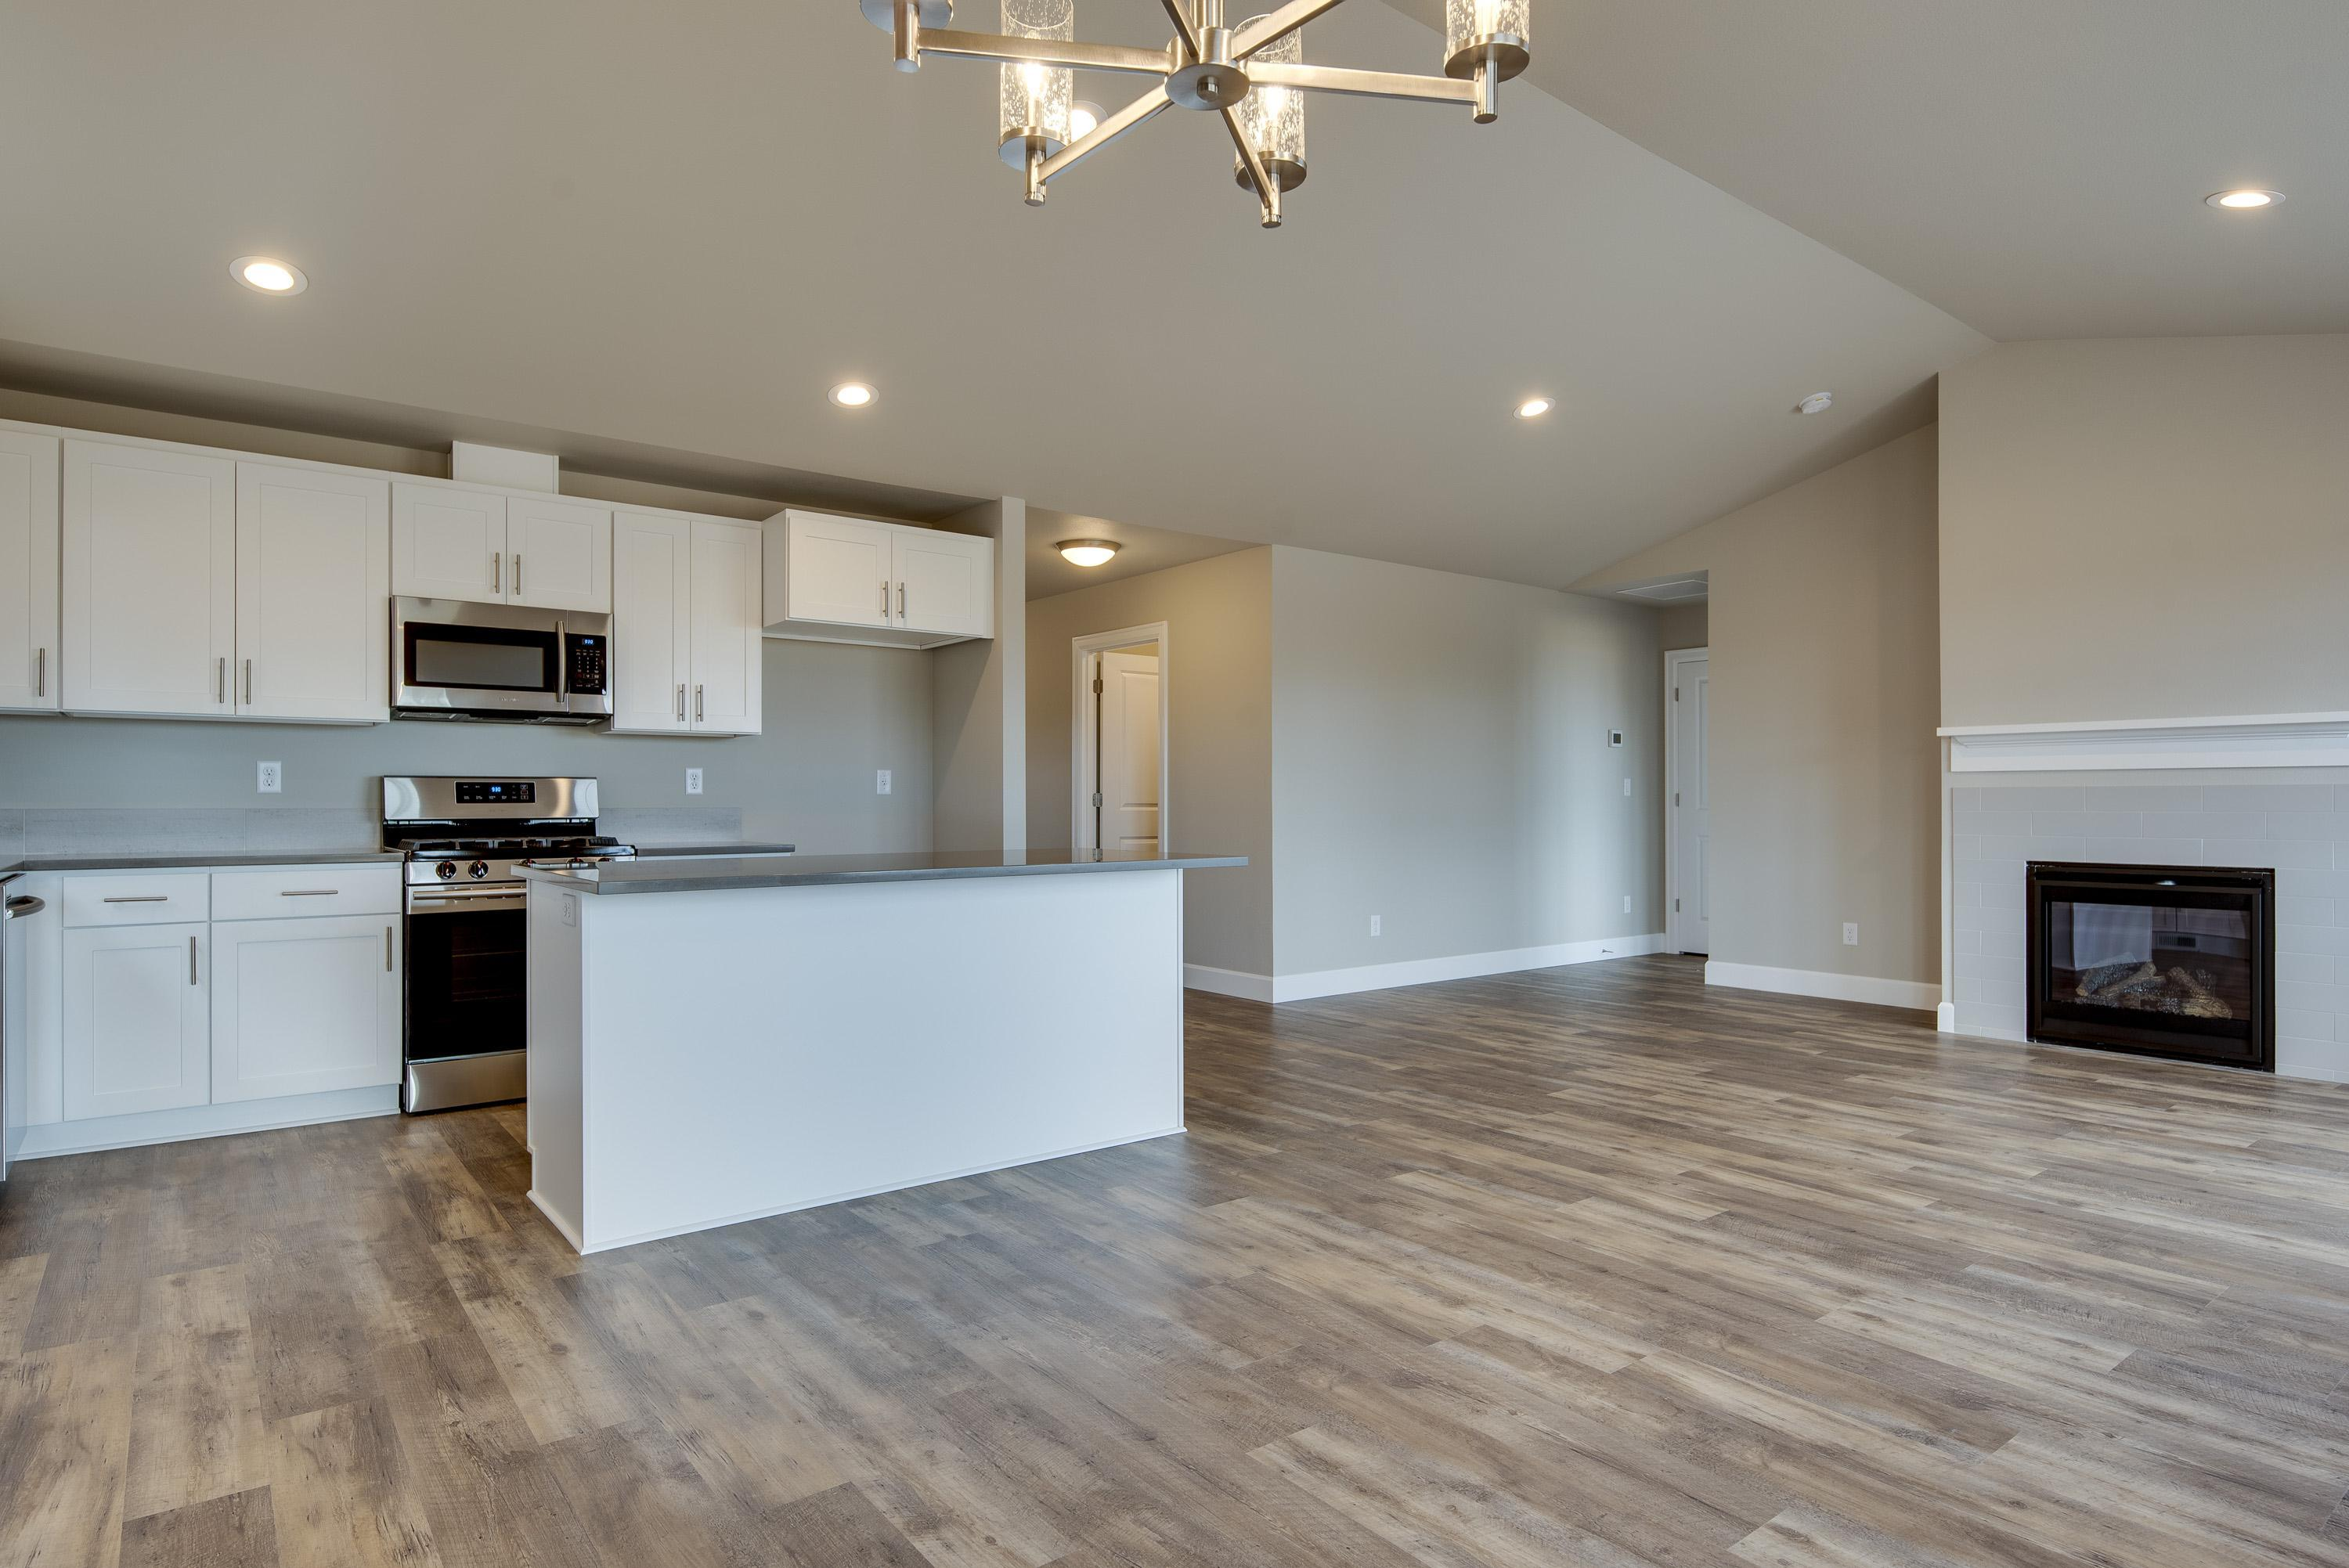 Kitchen featured in the Laredo A By Woodhill Homes in Central Oregon, OR